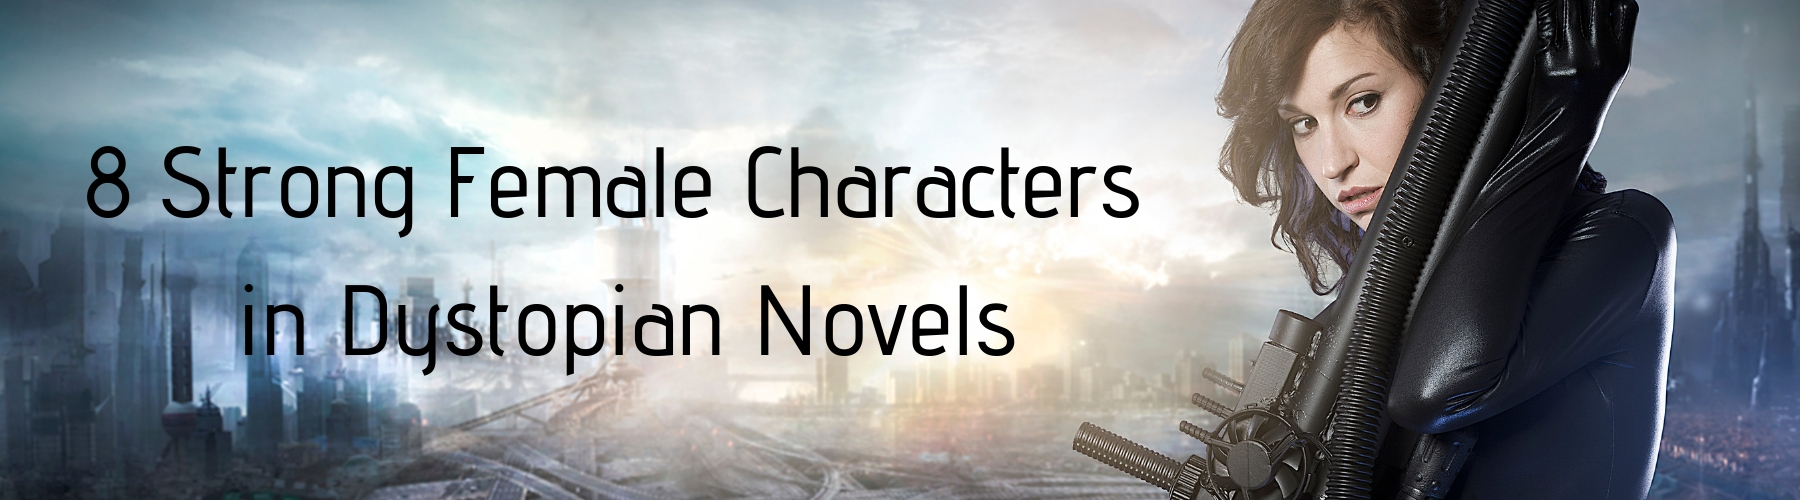 8 Strong Female Characters in Dystopian Novels